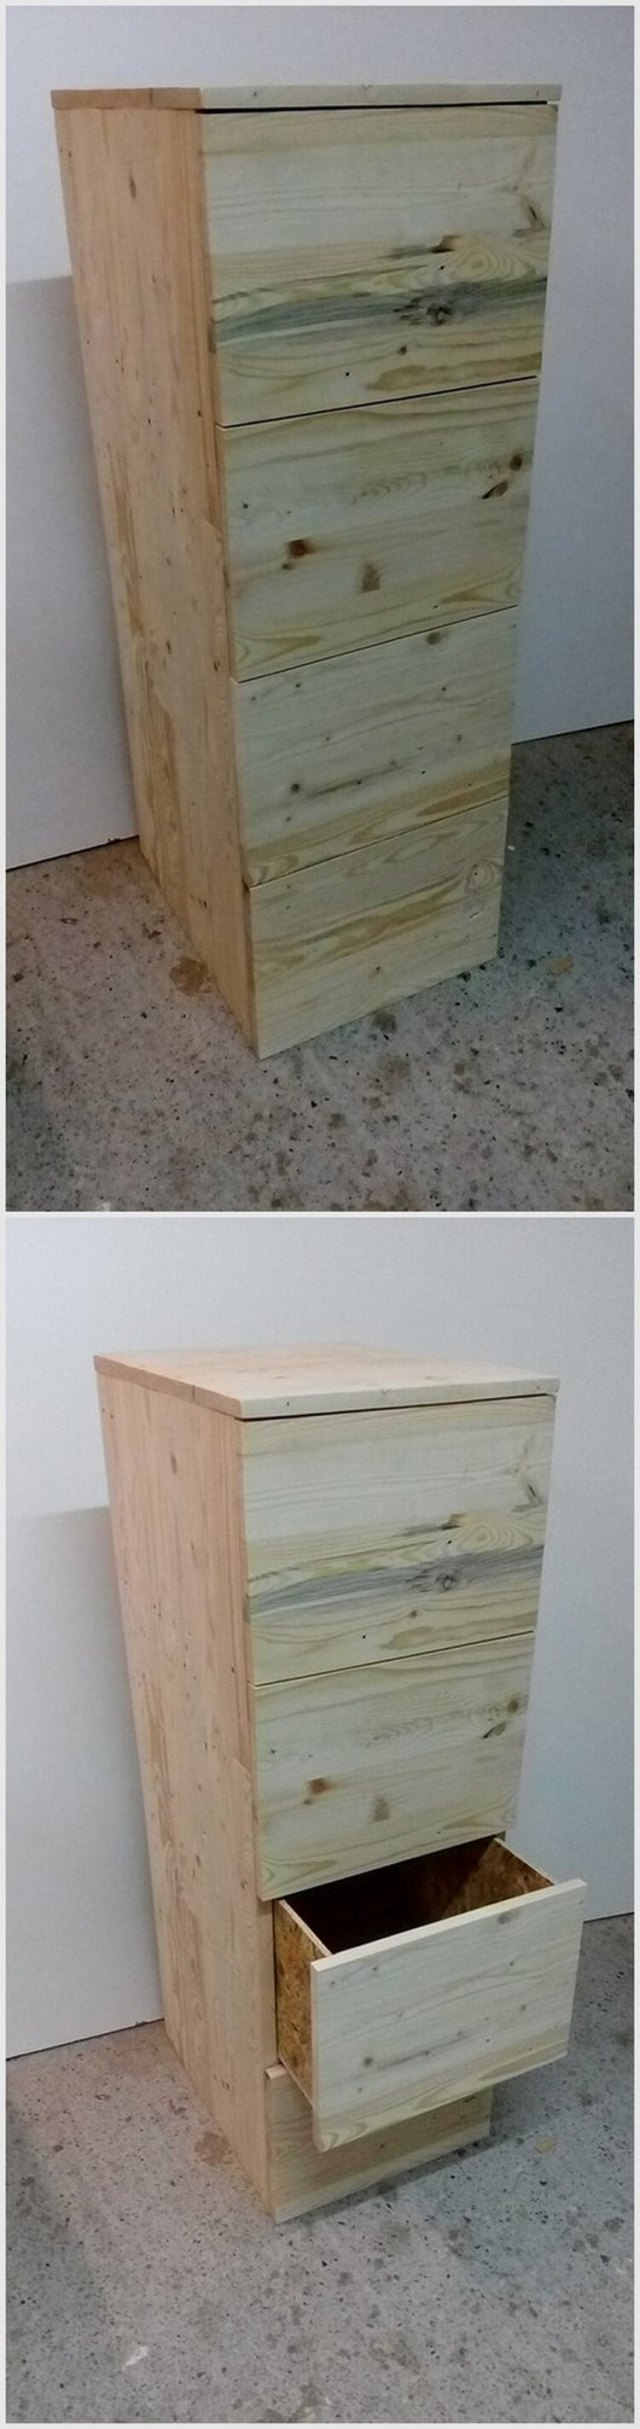 Wood Pallet Drawers